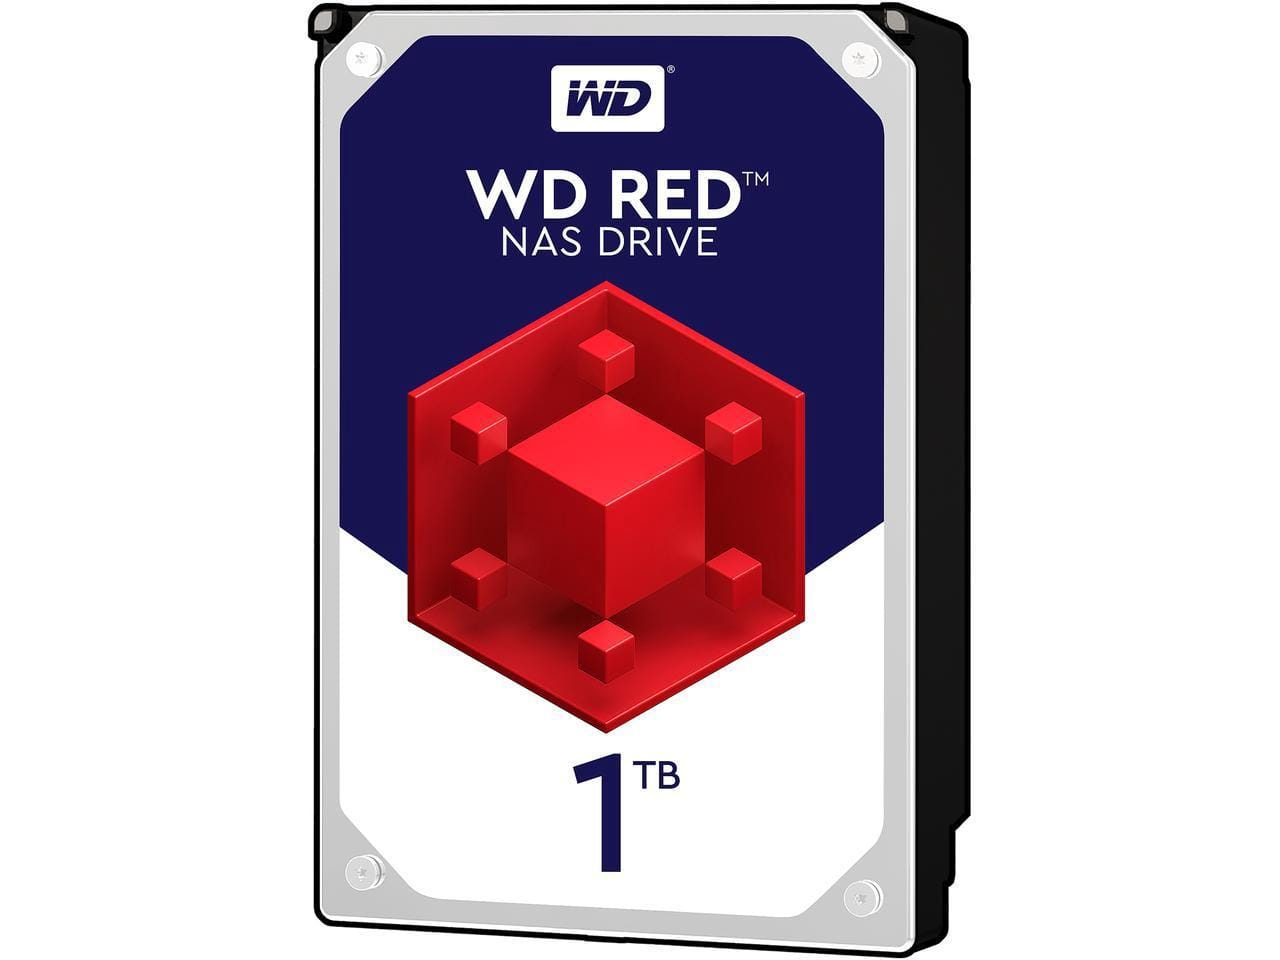 WD Red 1TB NAS Hard Disk Drive - 5400 RPM Class SATA 6Gb/s 64MB Cache 3.5 Inch $57.99